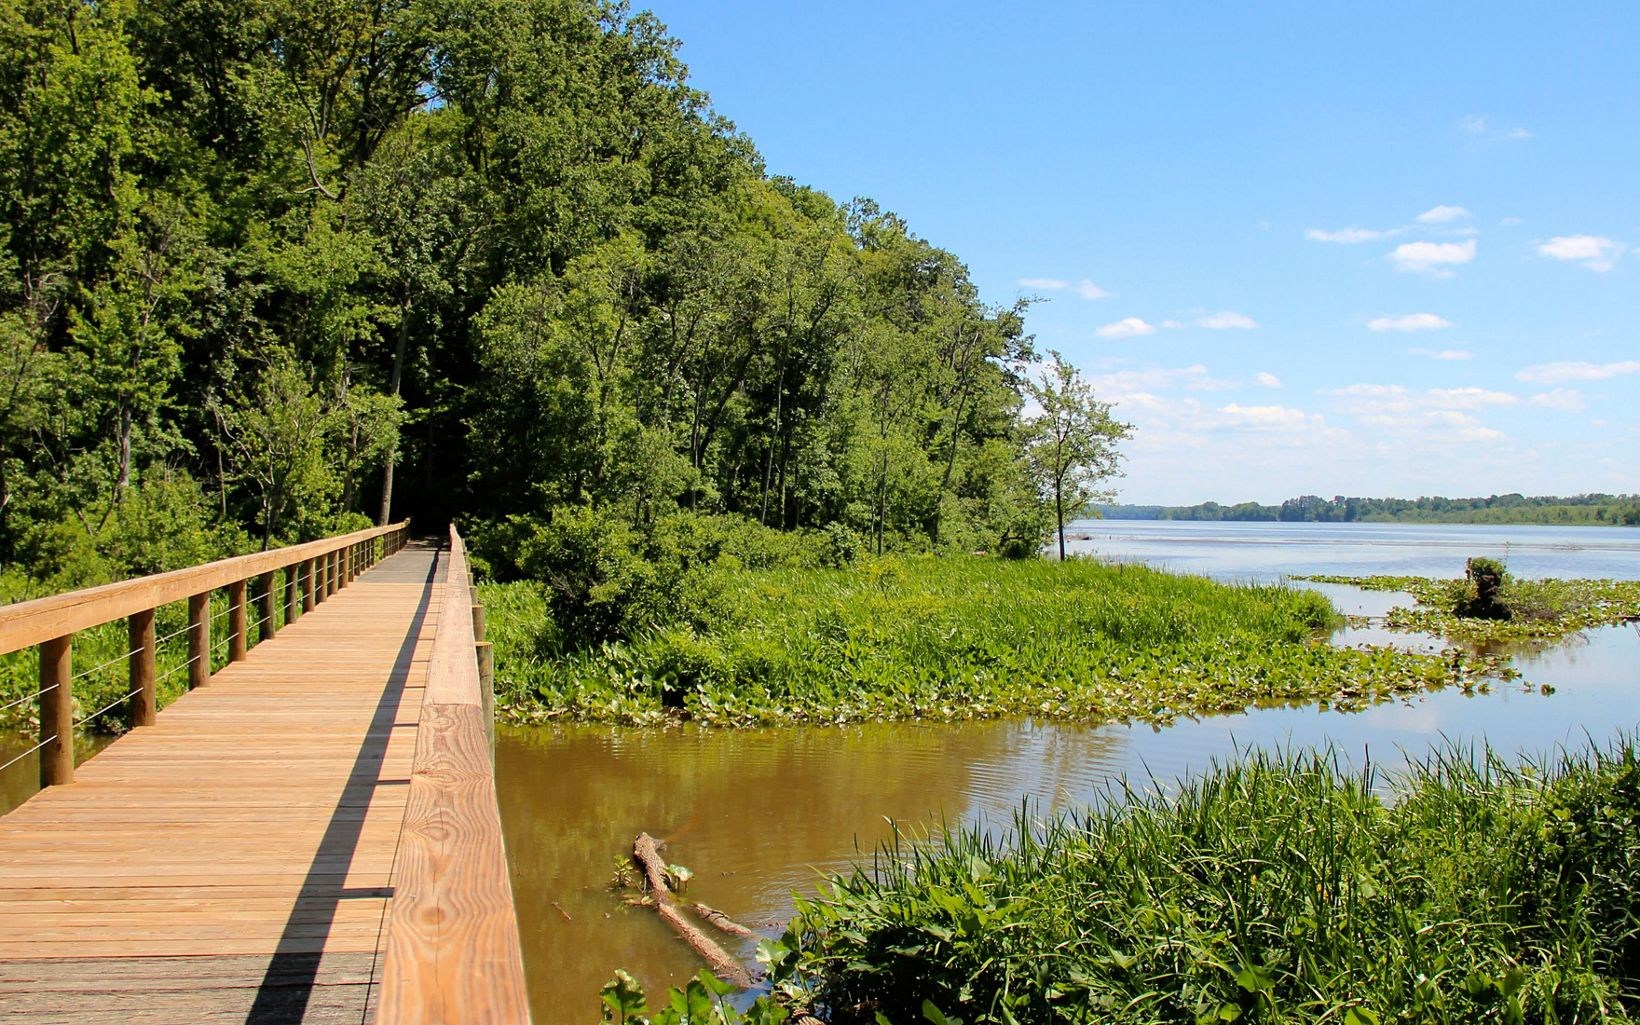 A wooden footbridge extends over open water and wetlands. The main branch of a river is visible in the background with a distant forest along the edges of the river bank.